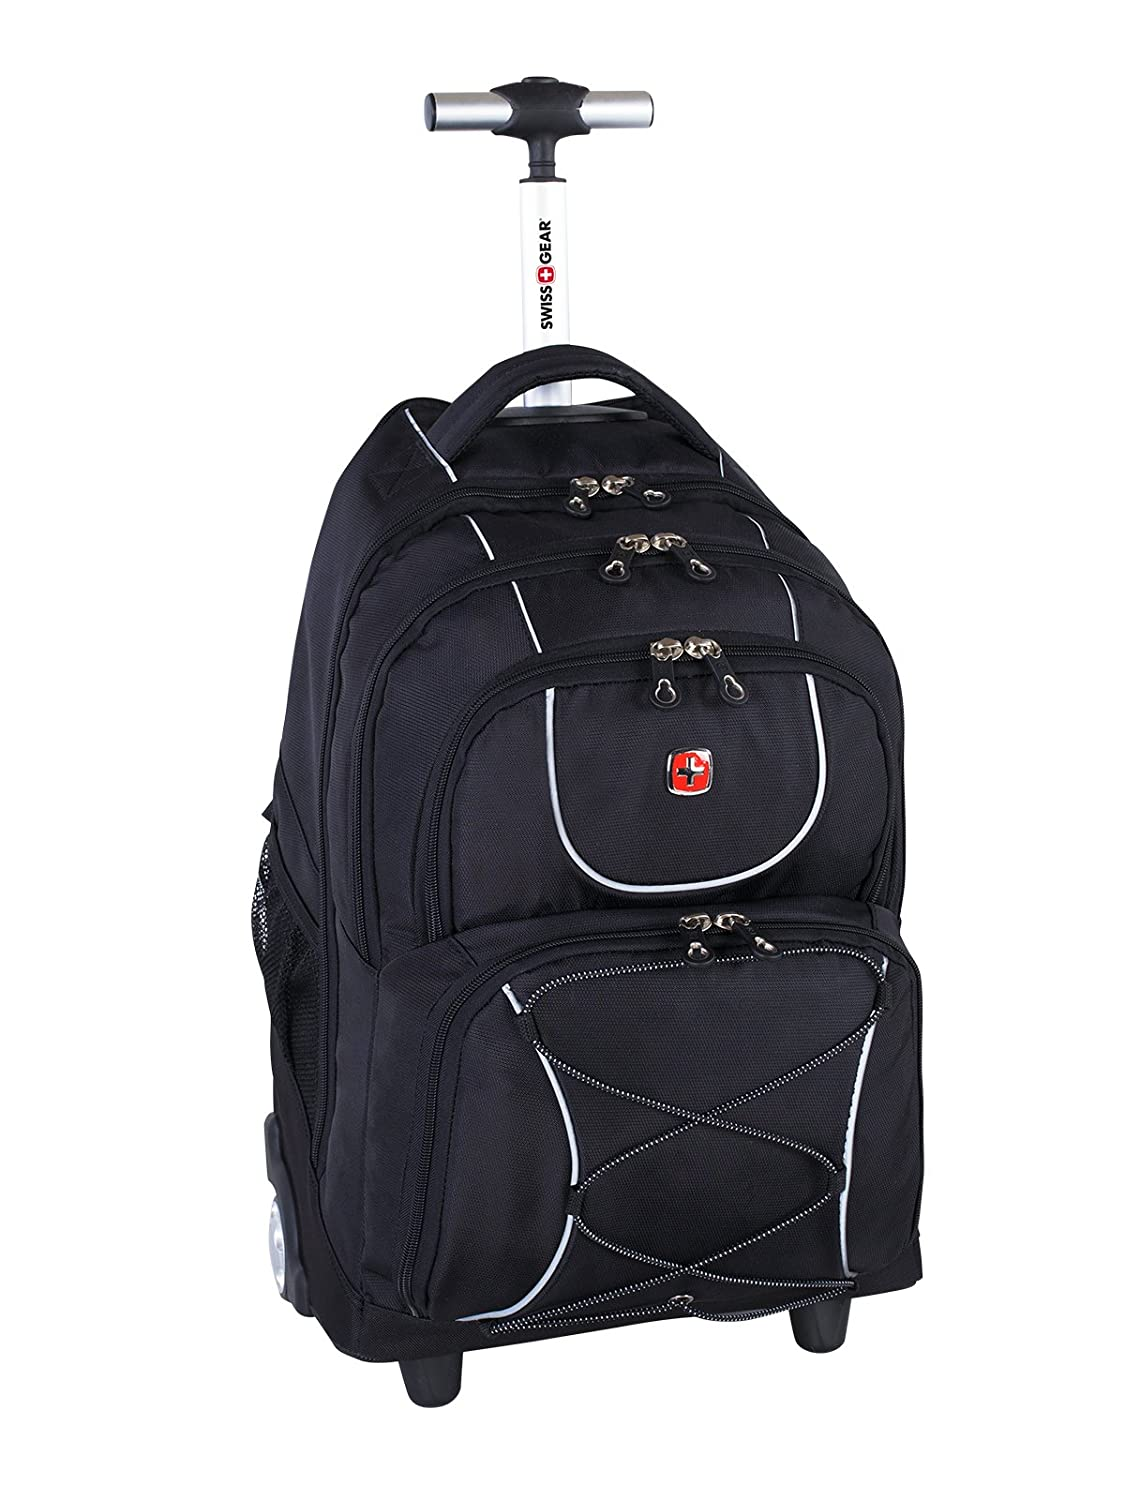 Swissgear computer backpack review